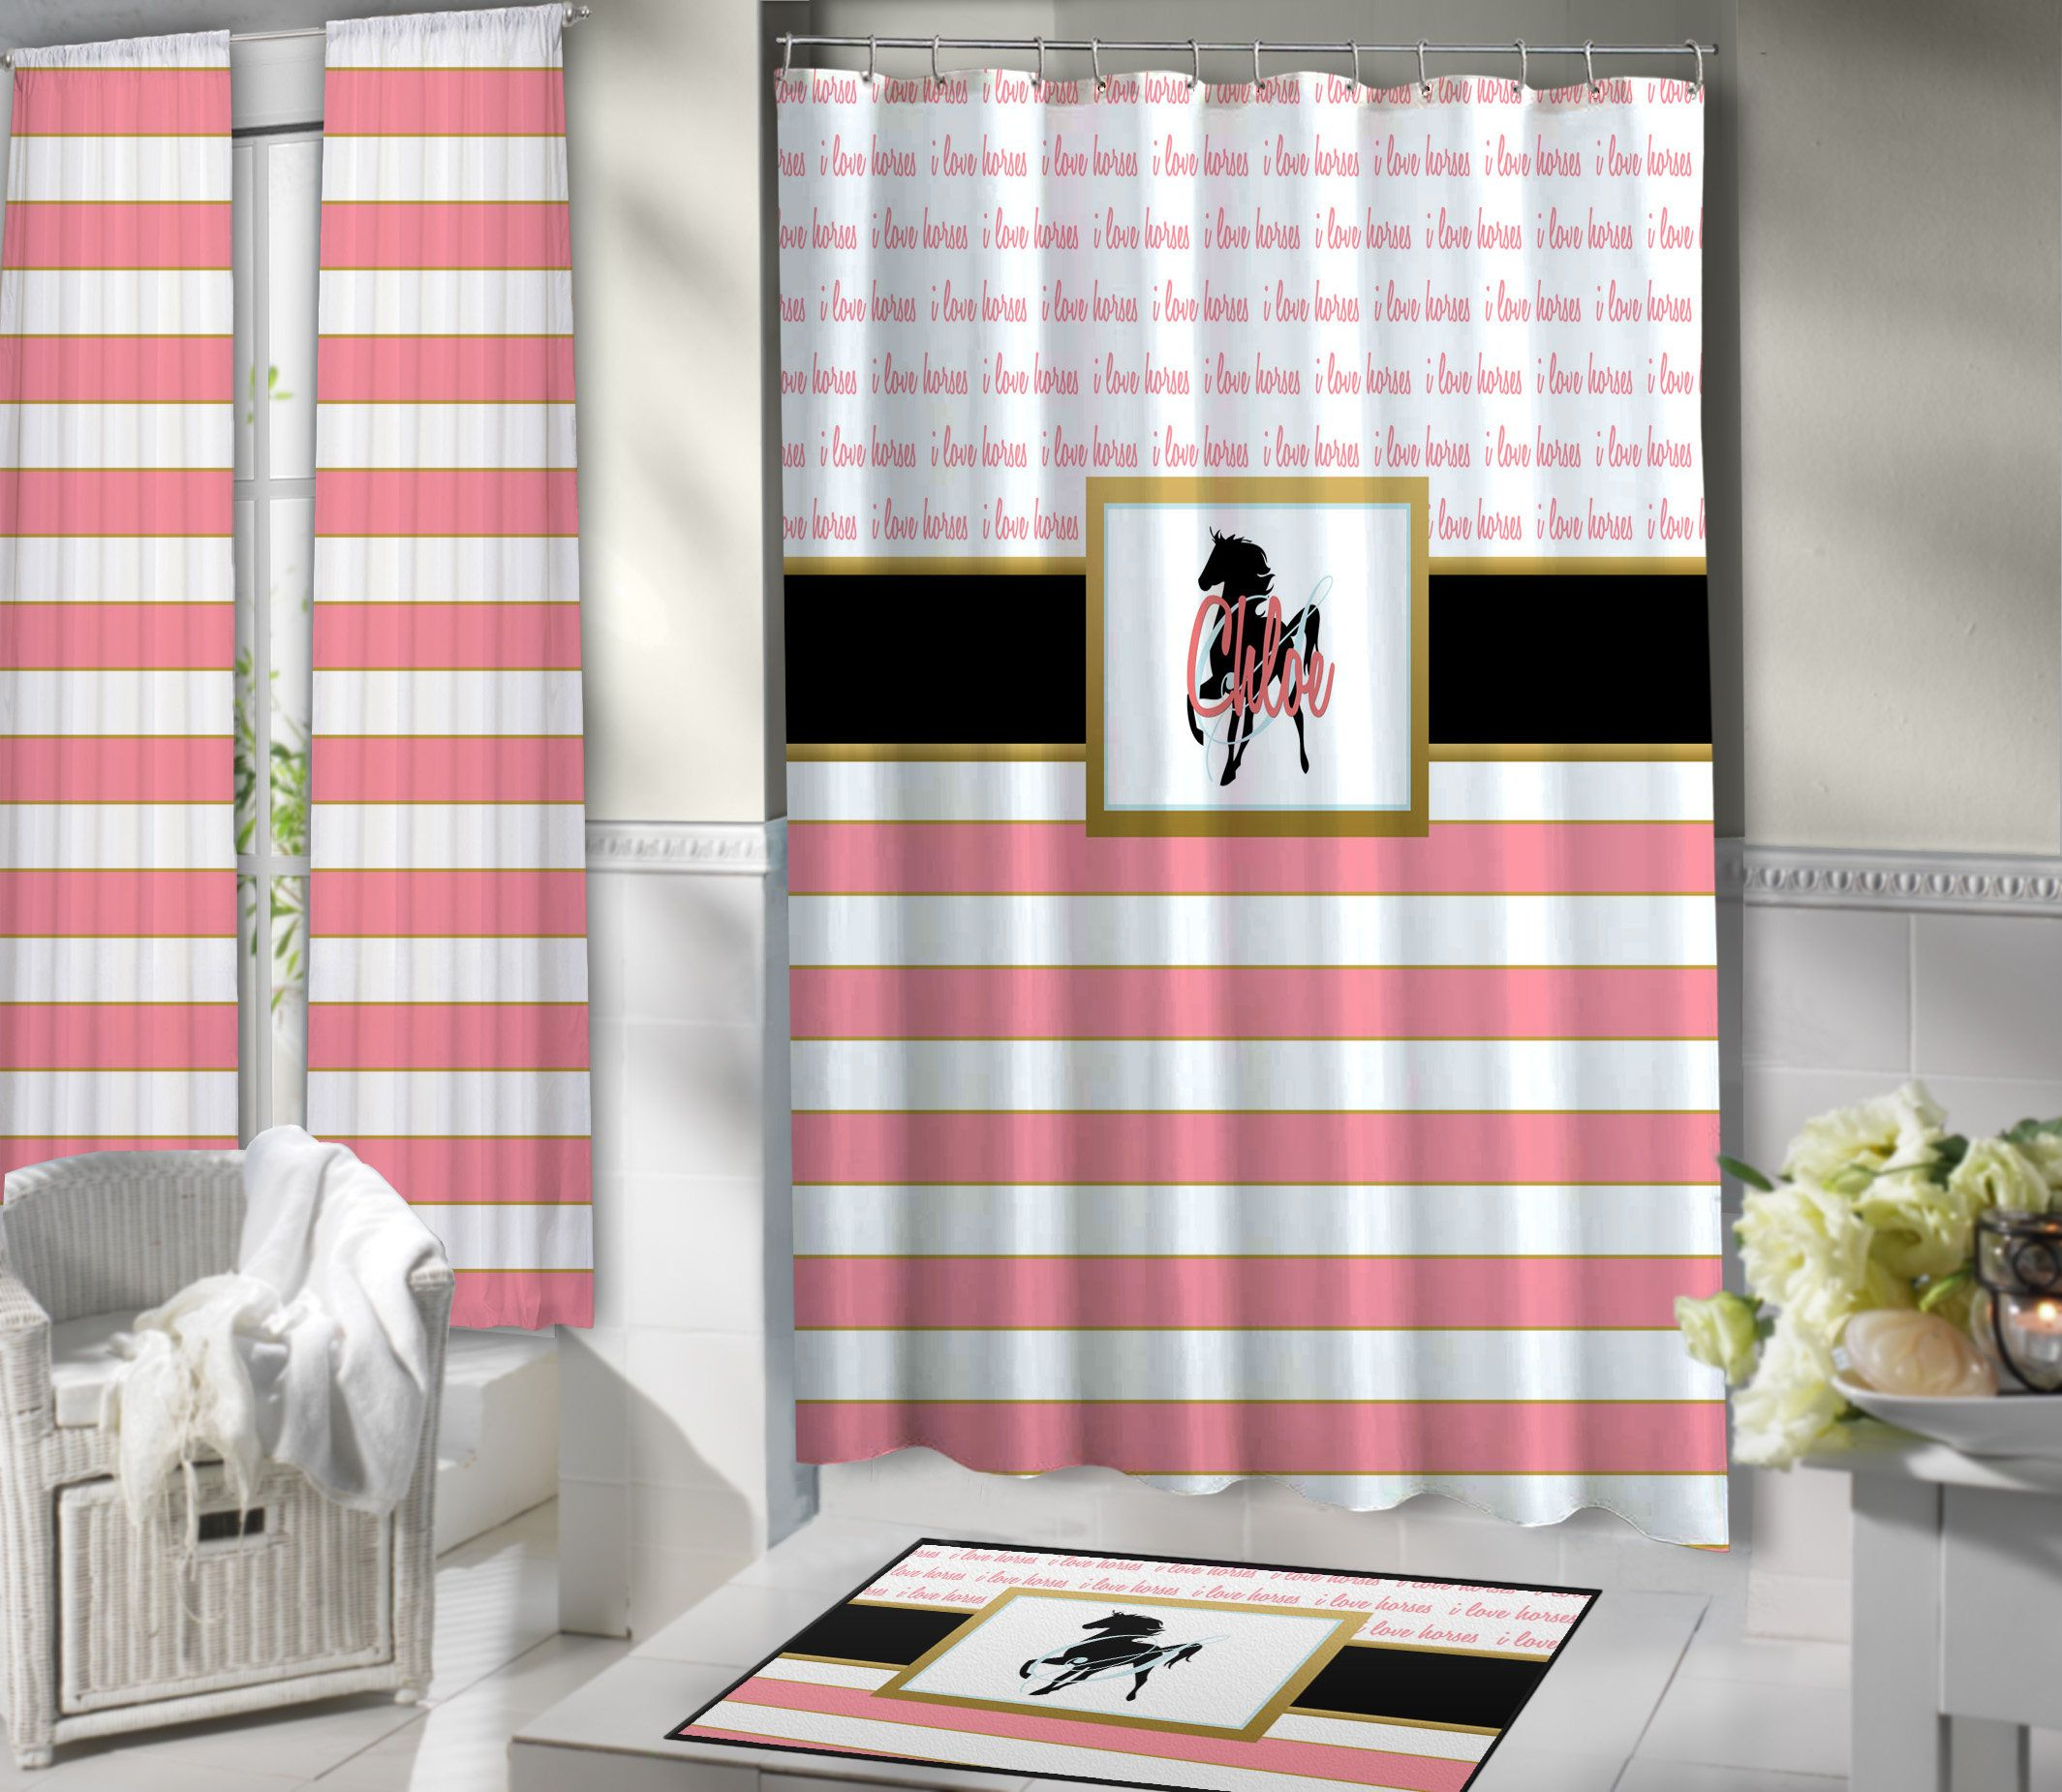 Light Pink Shower Curtain - Horse - Pink Shower Curtains - Striped ...